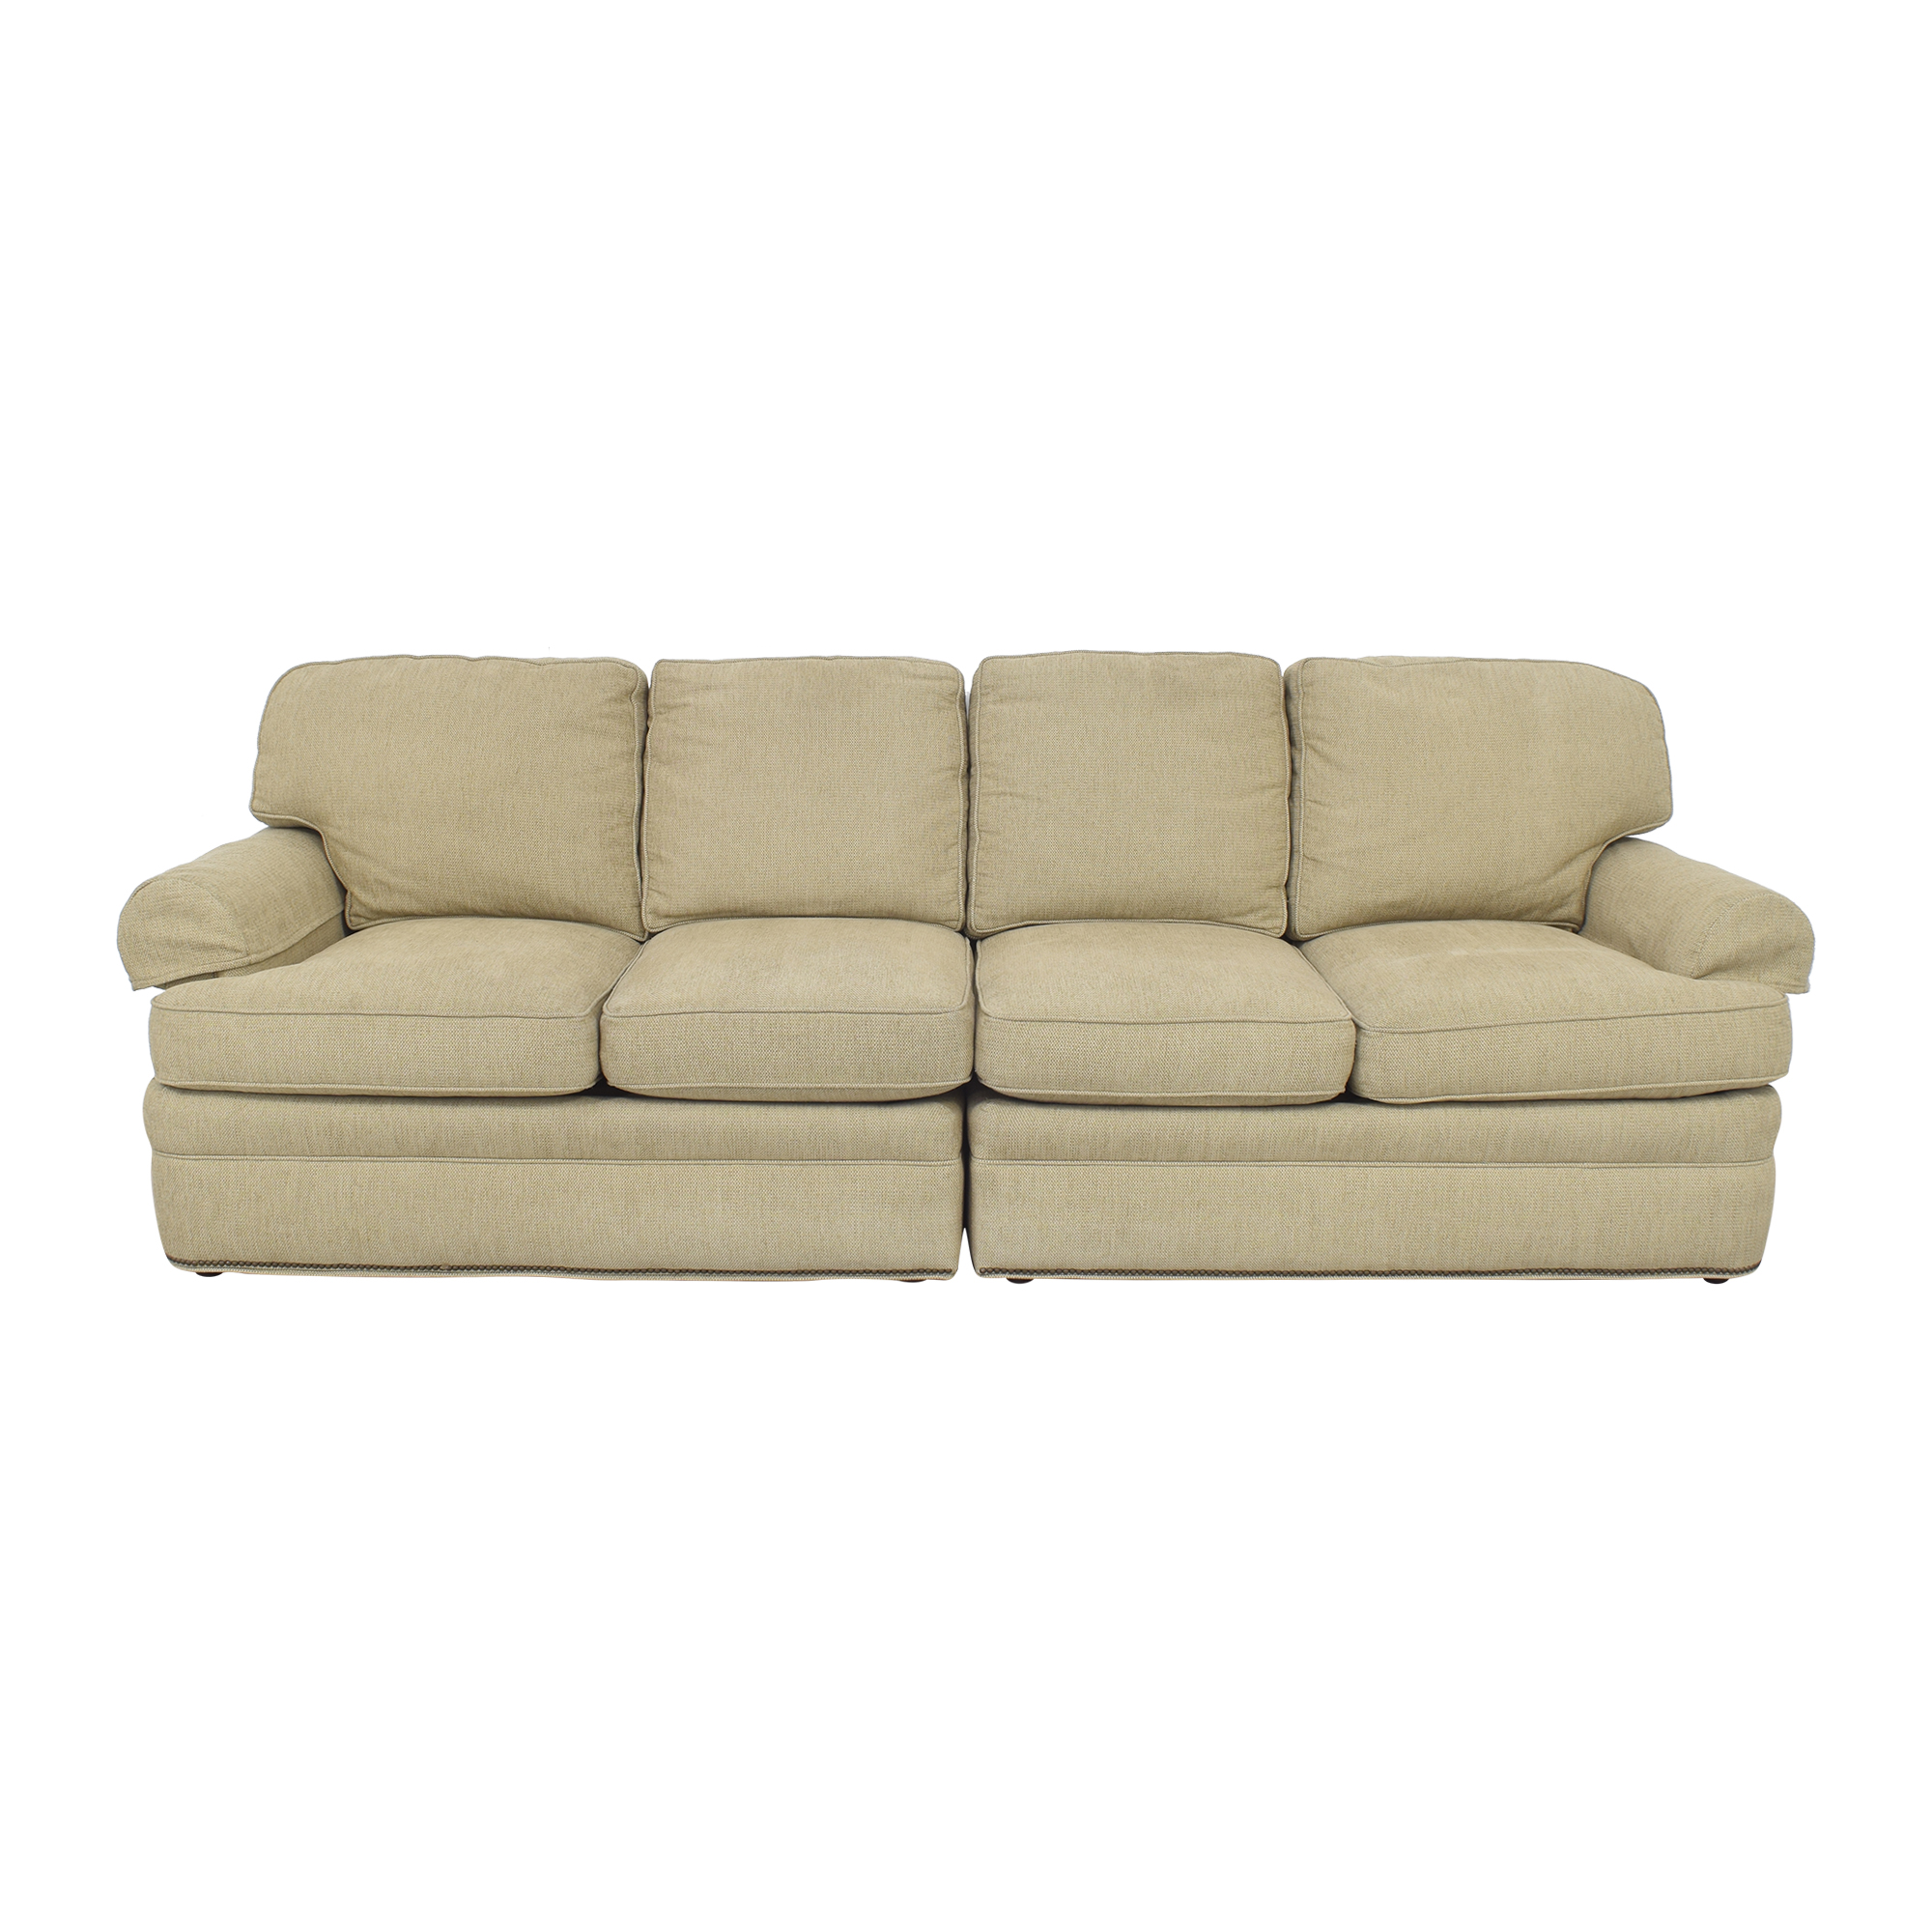 Safavieh Two Piece Sectional Sofa / Sectionals